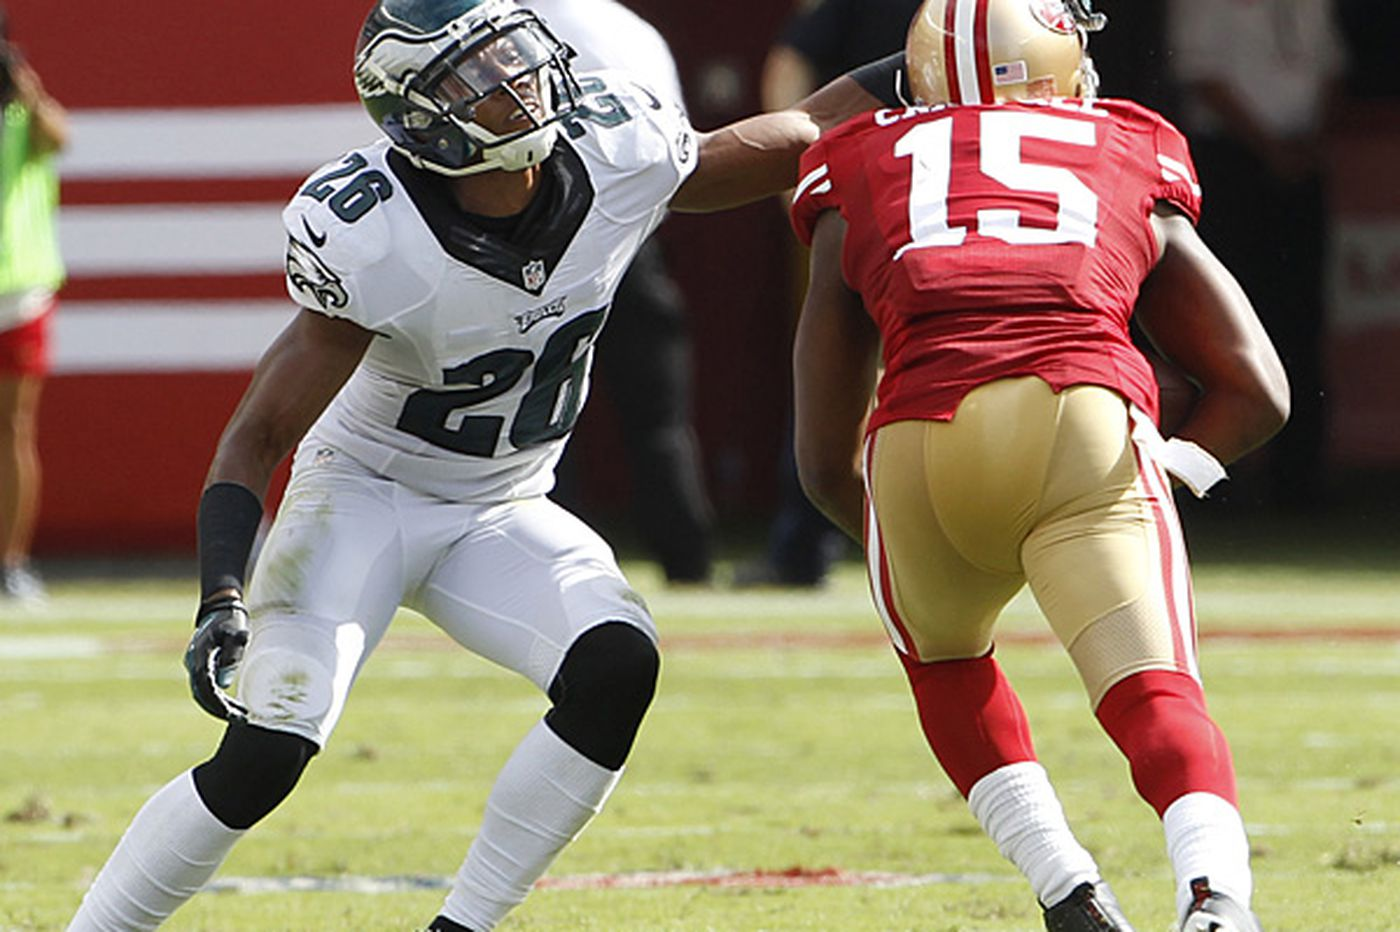 Cary Williams' play says plenty about him